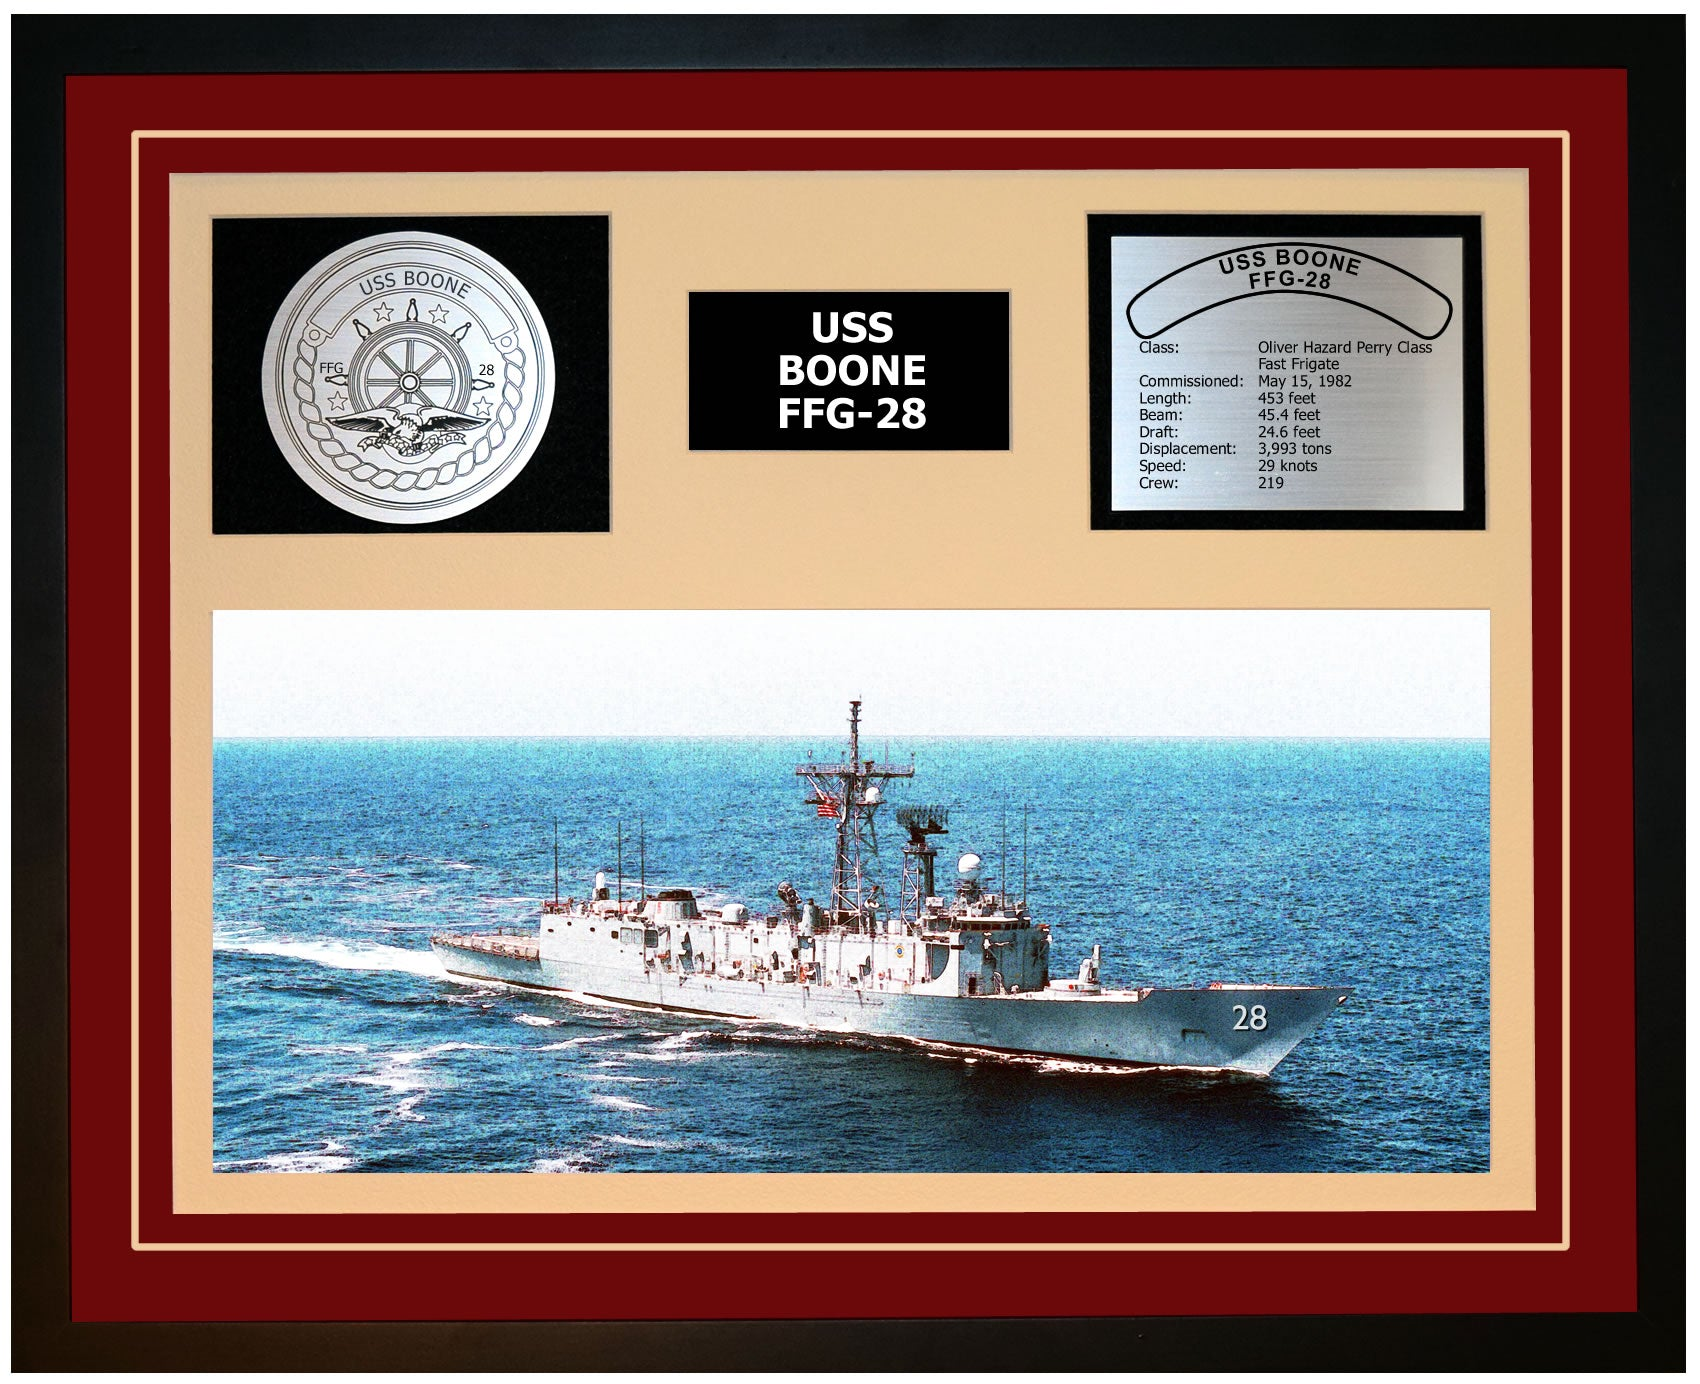 USS BOONE FFG-28 Framed Navy Ship Display Burgundy